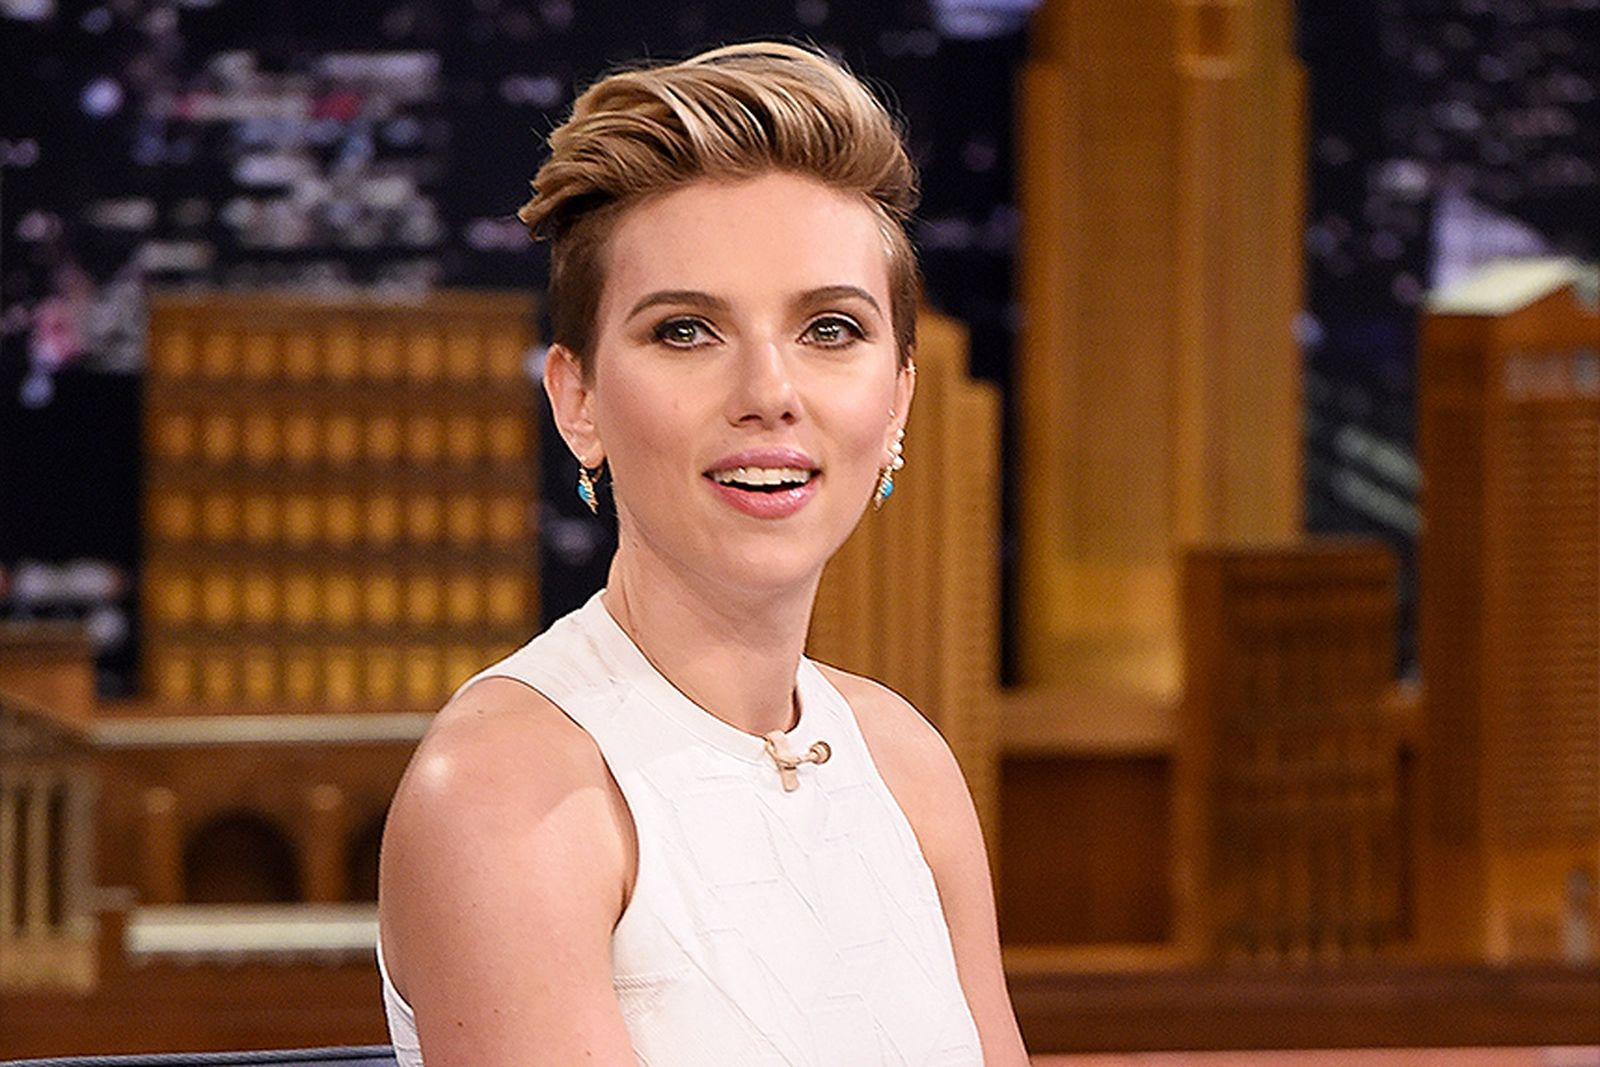 Scarlett Johansson Addresses Casting Criticism In As If Interview